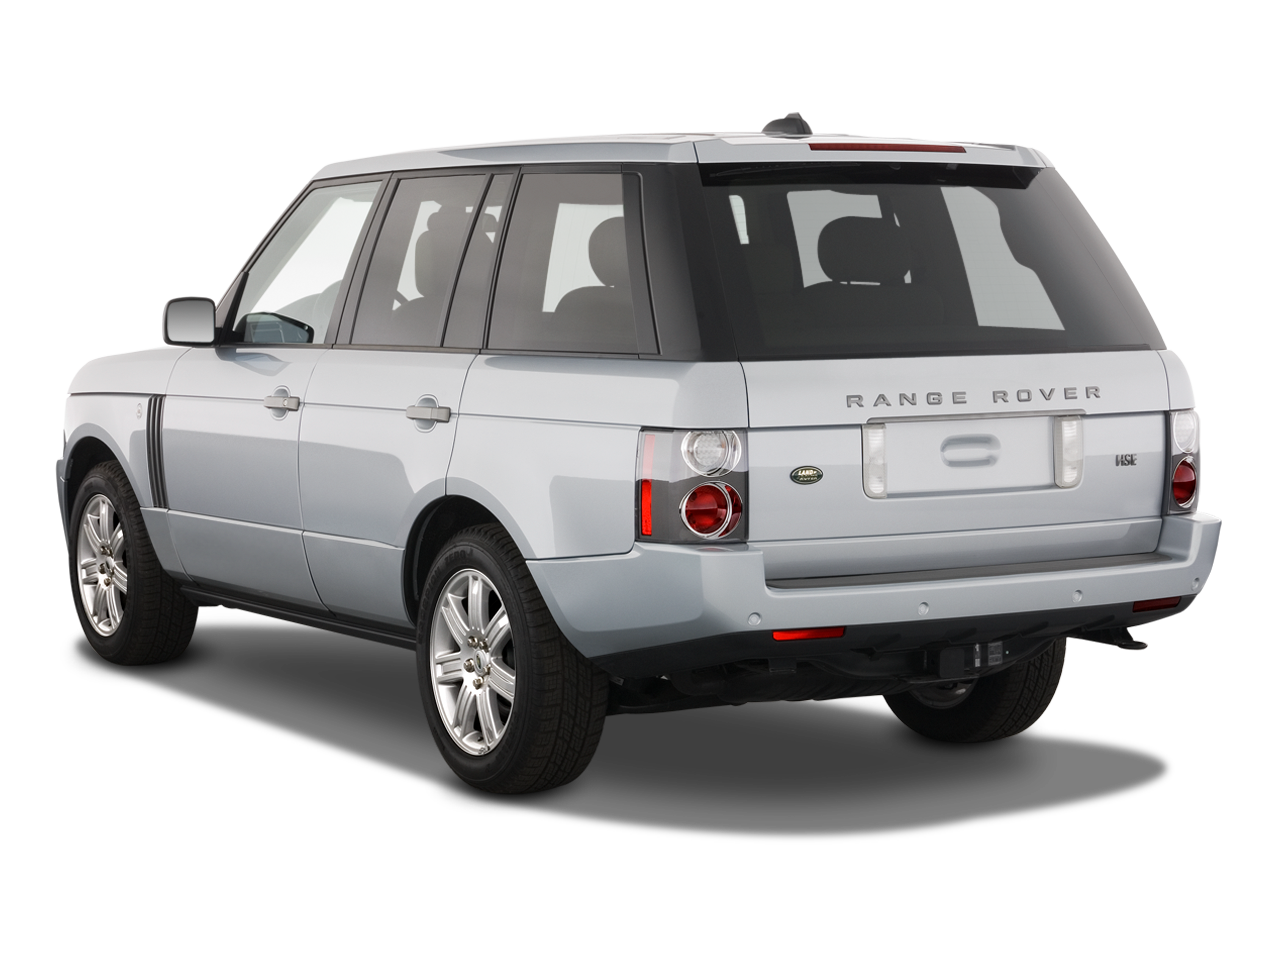 2008 Land Rover Range Rover Hse Land Rover Luxury Suv